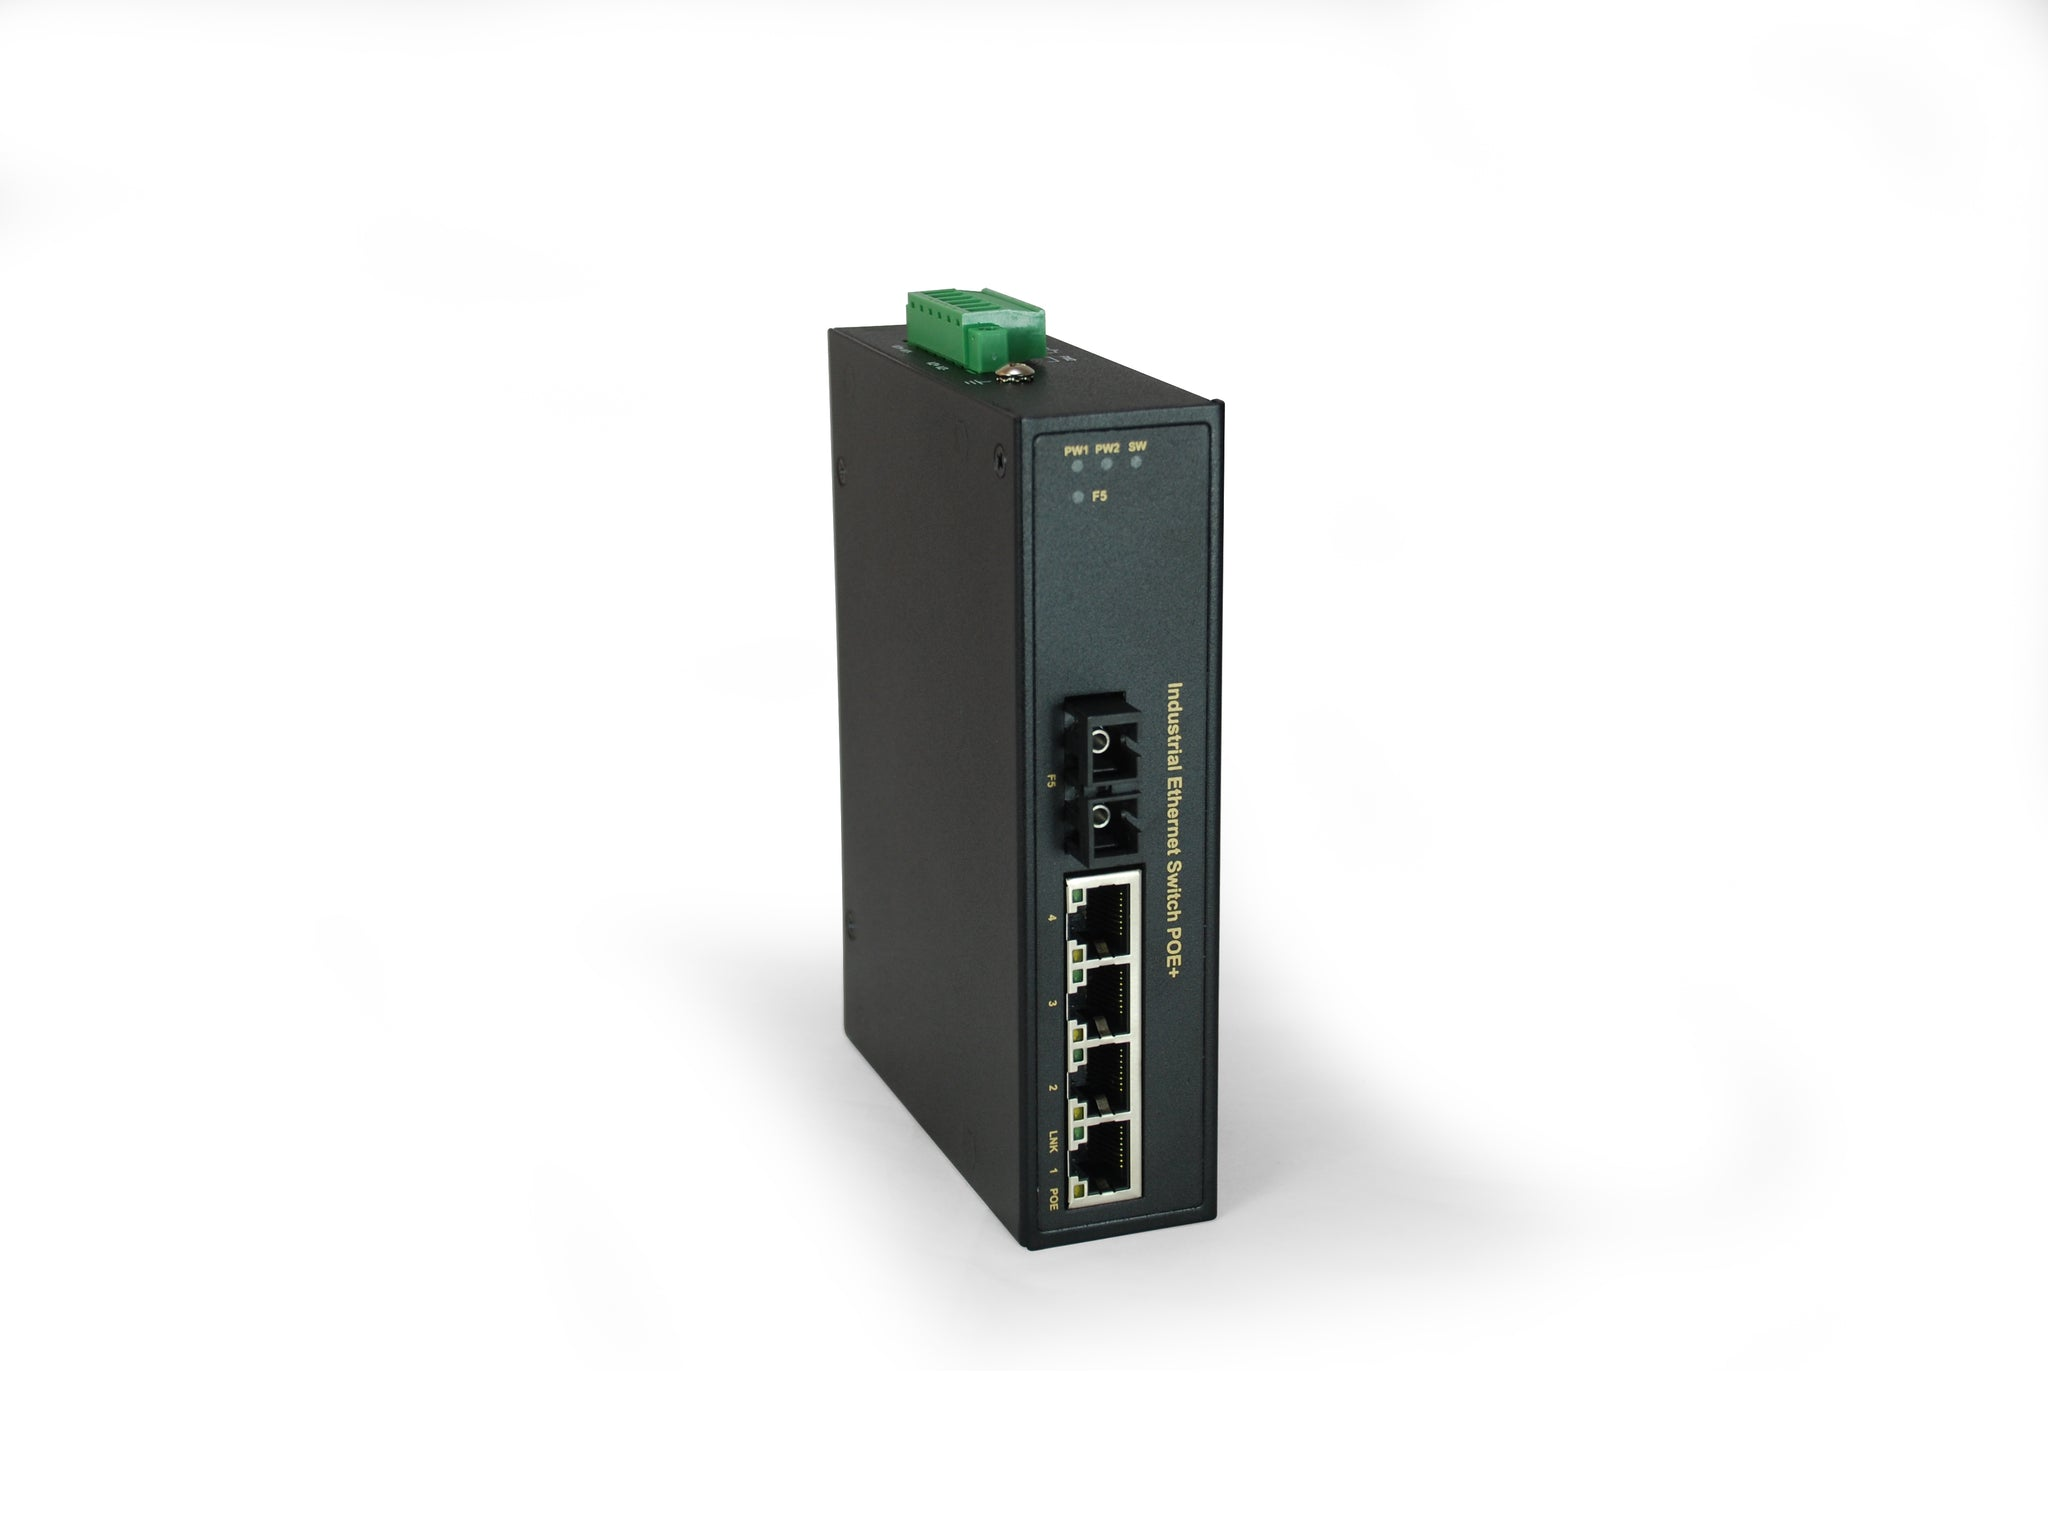 IFP-0503 5-Port PoE, 4 PoE Outputs, 1 x SC Single-Mode Fiber, 30km, 126W, -40°C to 75°C